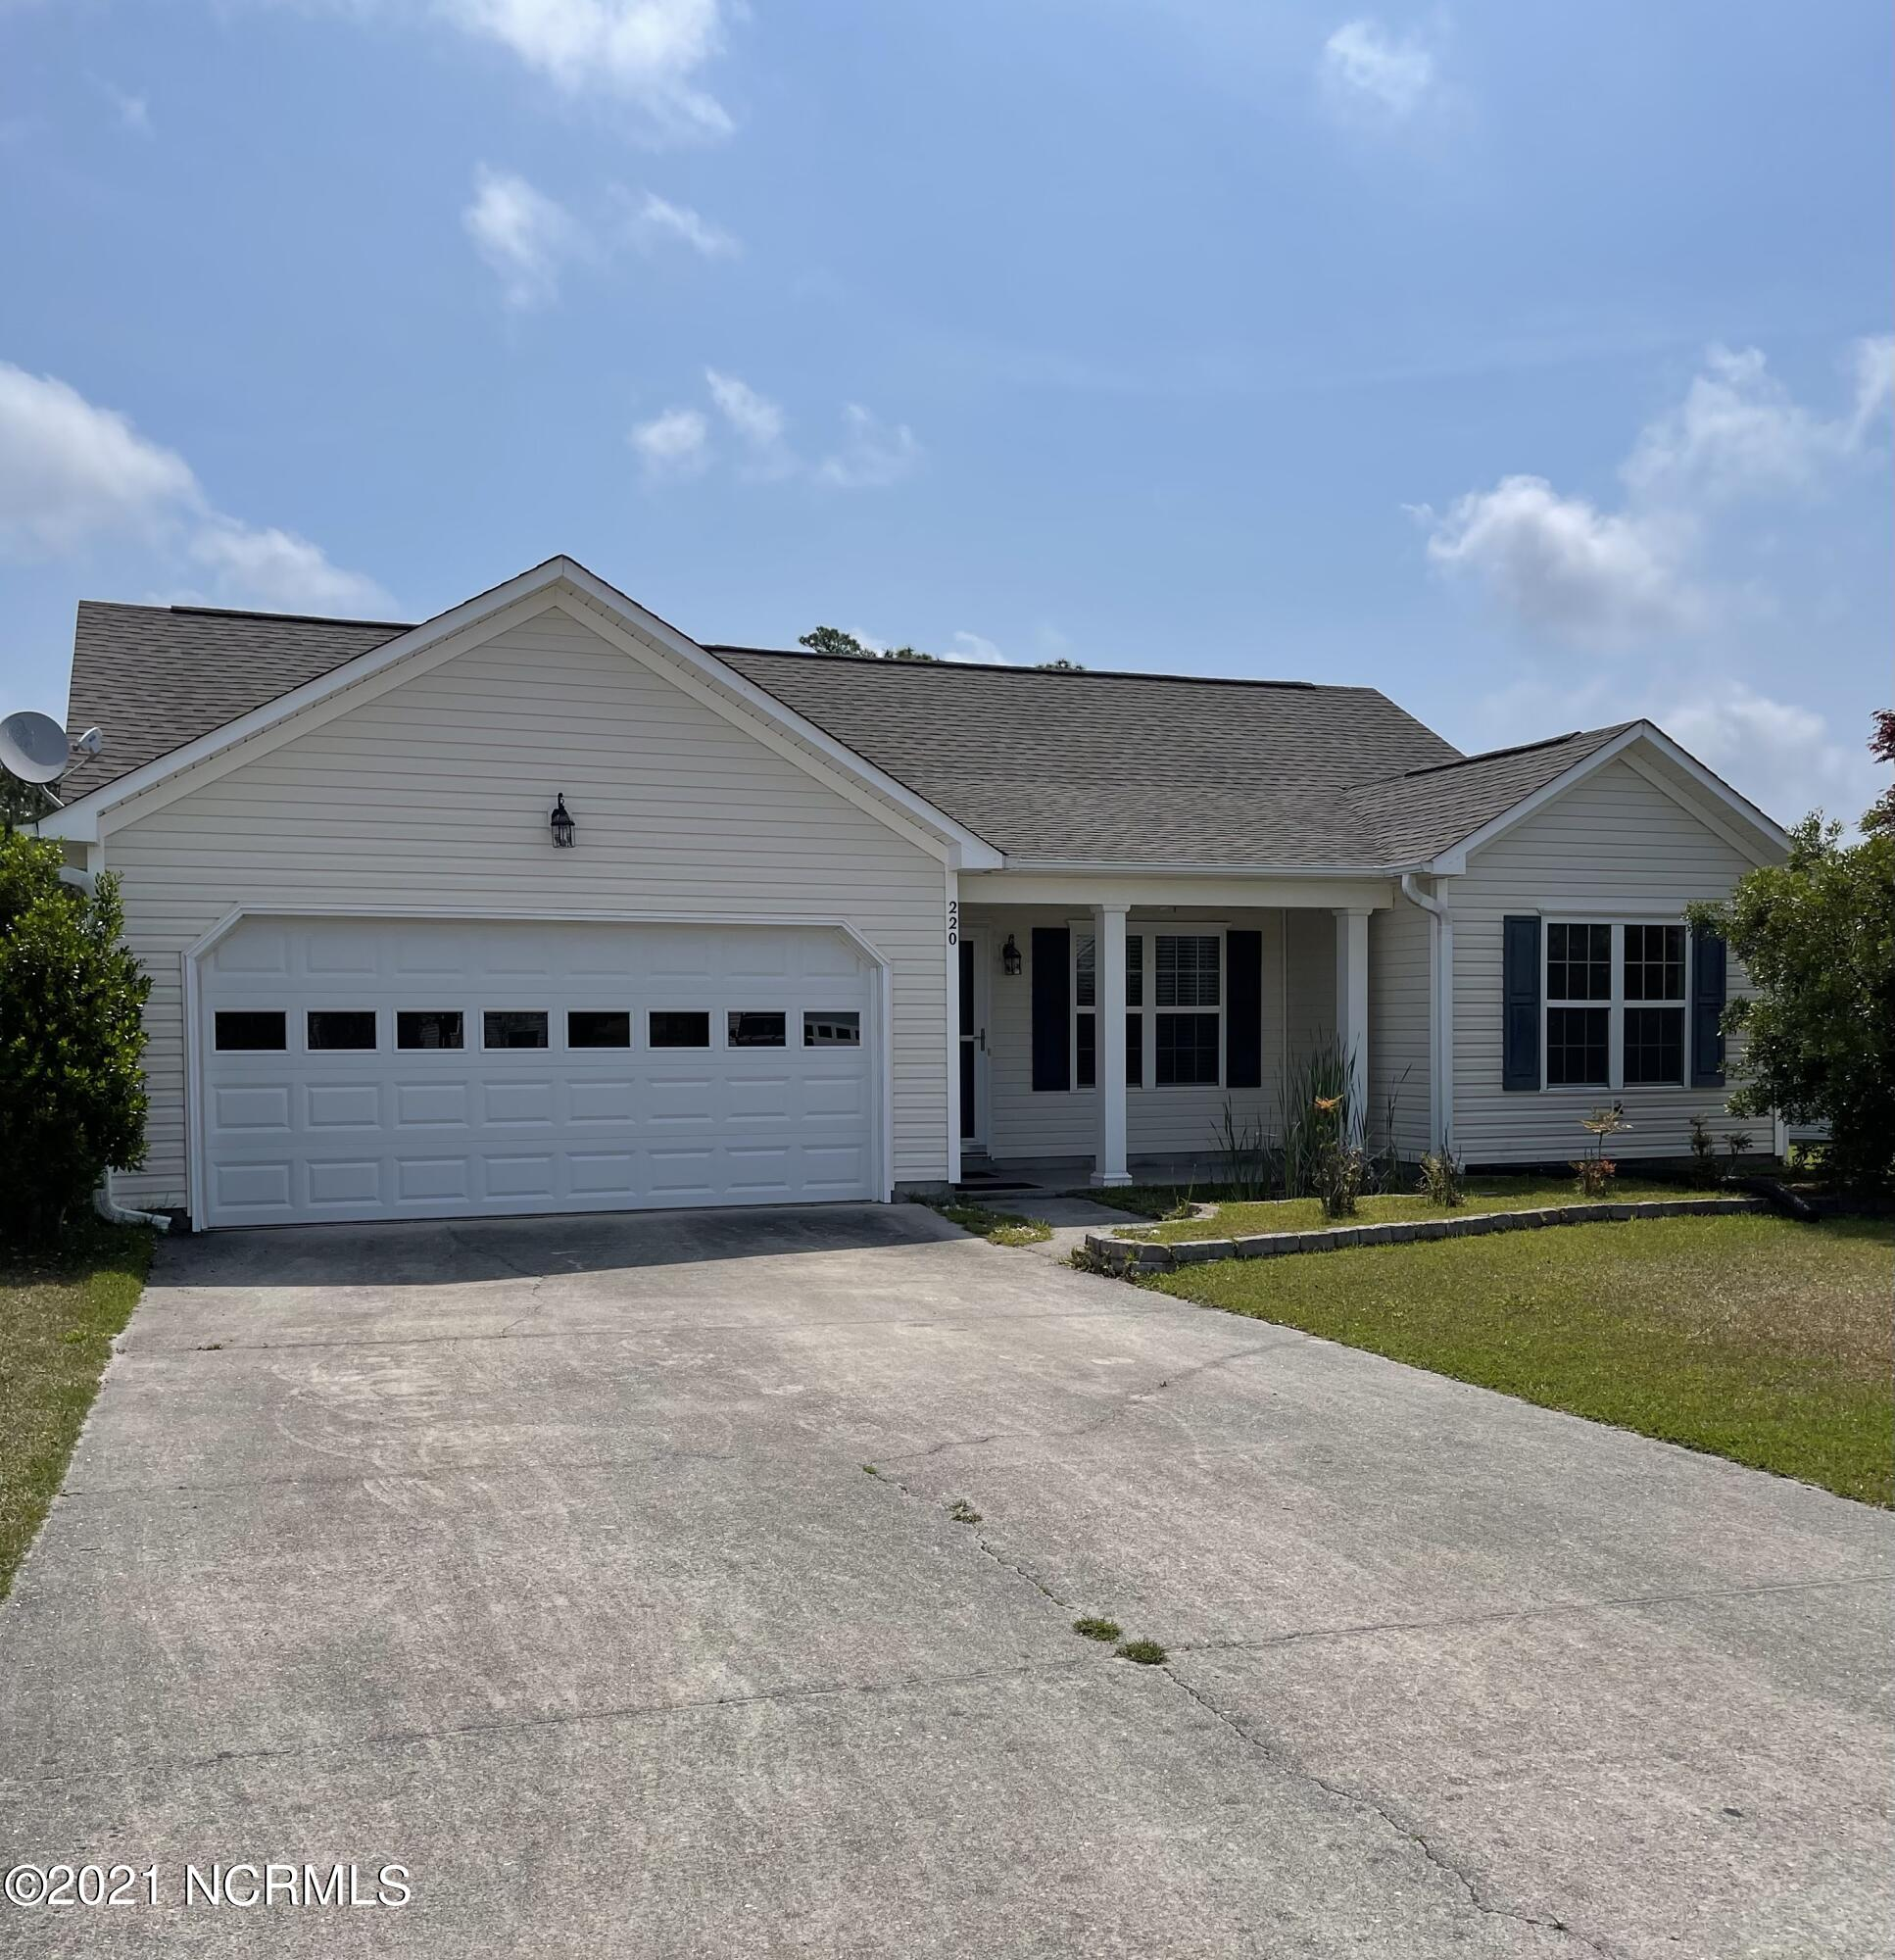 Welcome to this 3 bedroom, 2 bath home nestled in the heart of the Neighborhoods of Holly Ridge! Vaulted ceilings in the living room give this home an open, spacious feel. Short commute to Camp Lejeune and HWY 17!